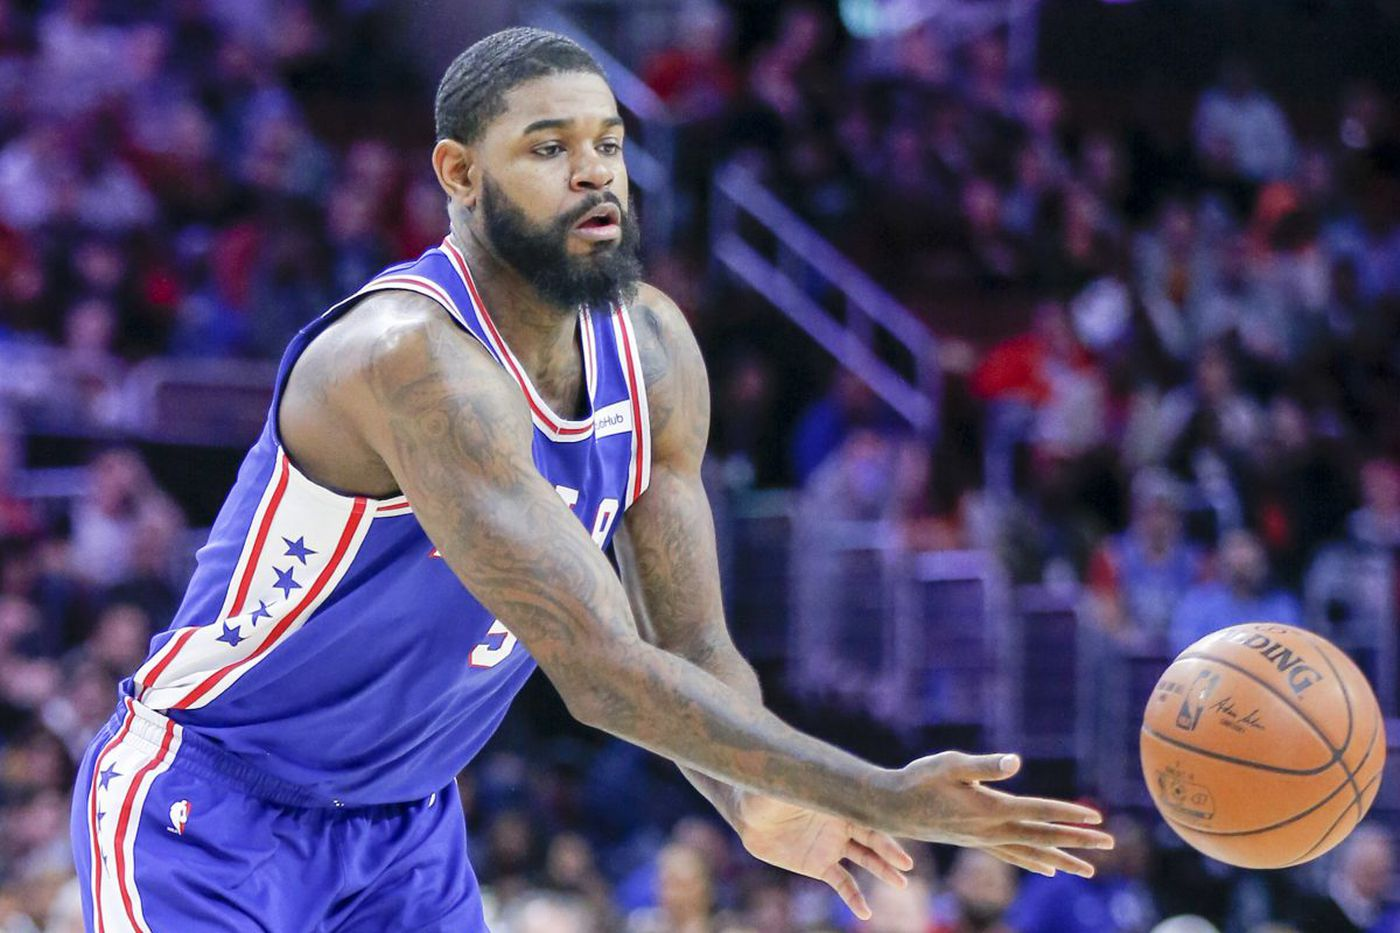 Sixers to start Amir Johnson at center for Joel Embiid against Bulls